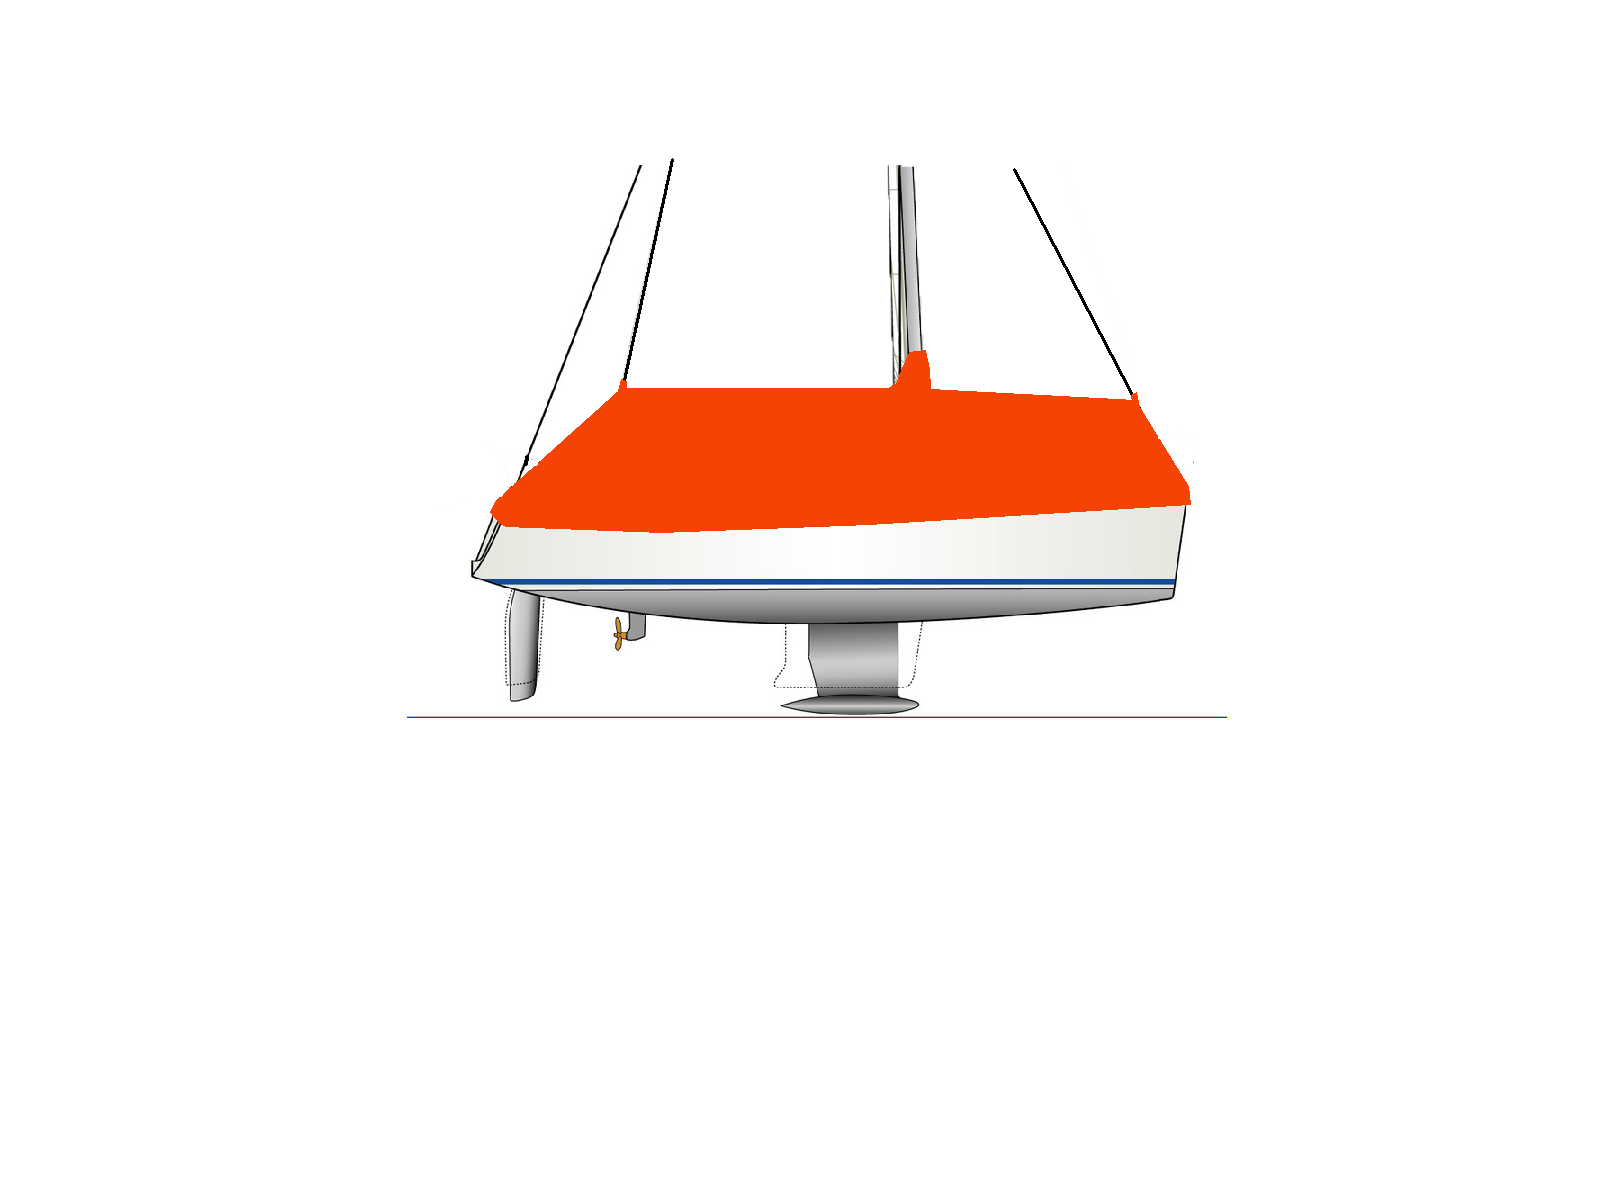 1 01 Typ A Segelboot GP ohne Reling.PNG 1 01 Typ A Segelboot GP ohne Reling